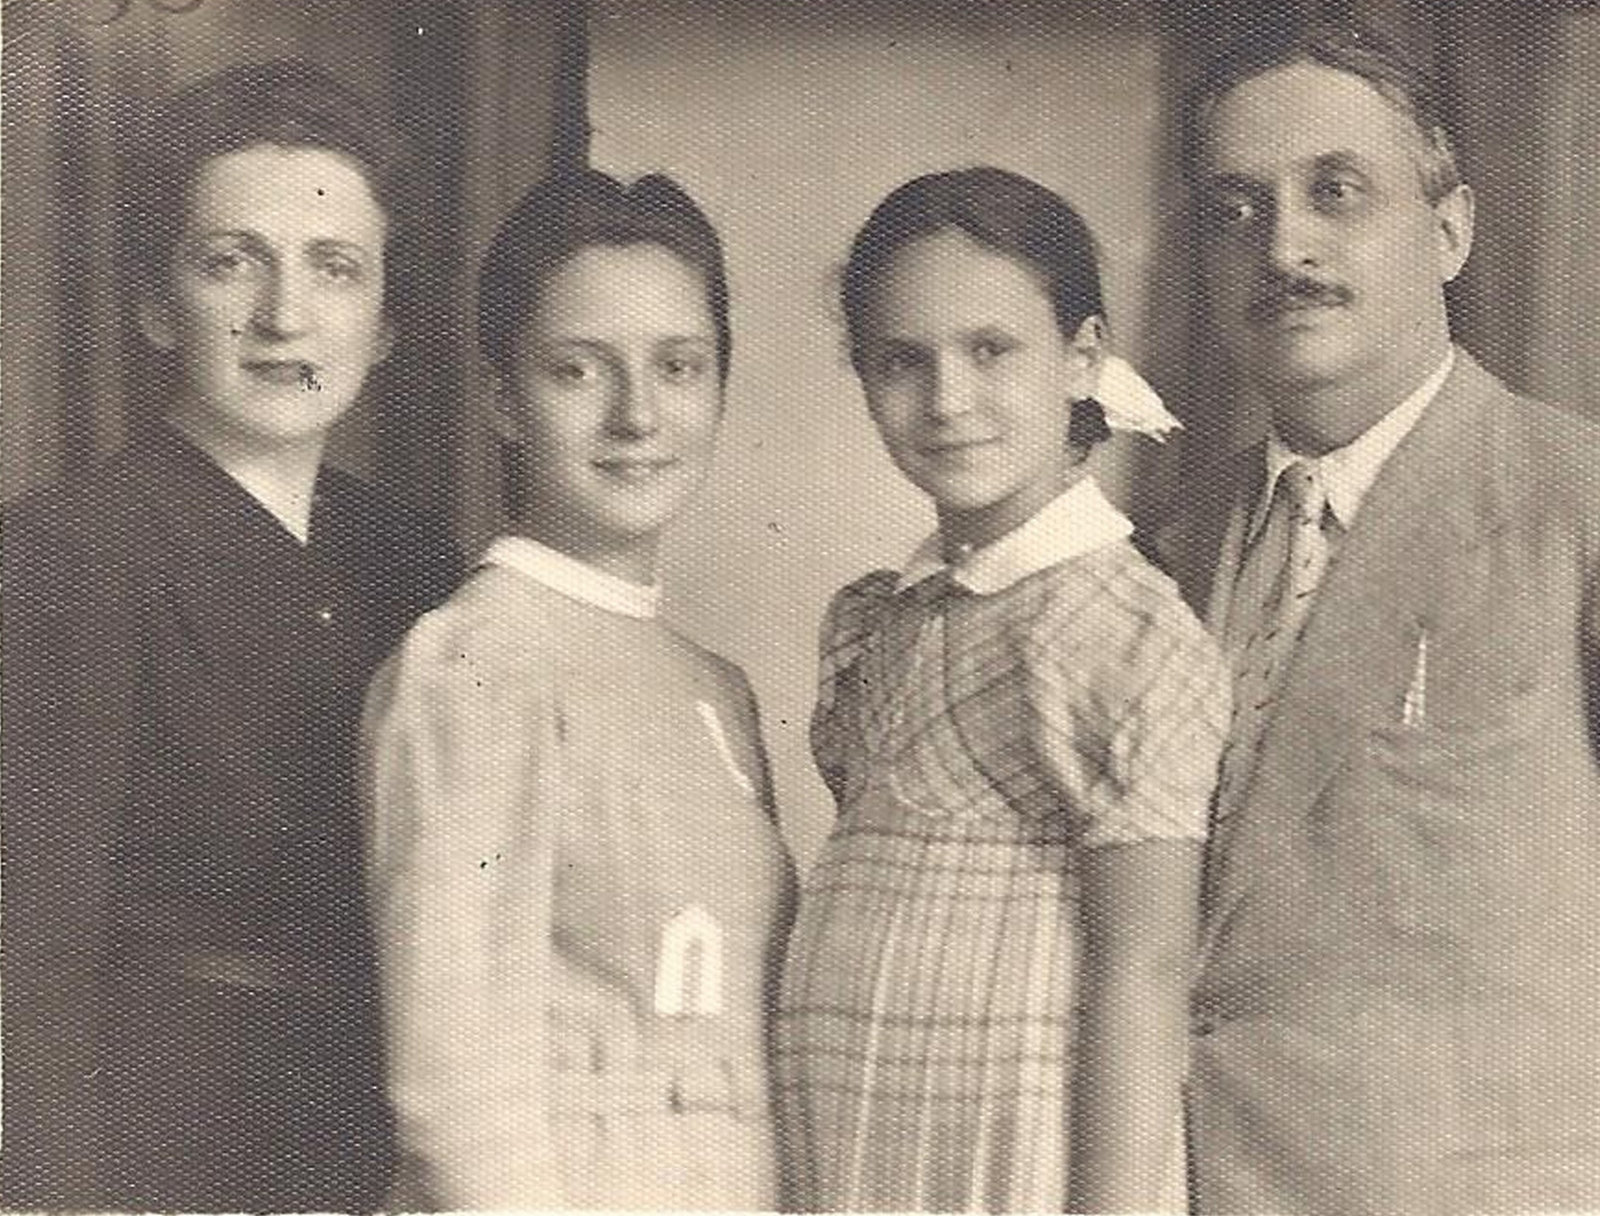 Passport photograph of the Janco family: Marcel Janco with his wife Clara and his daughters Josine and Theodora, 1941, Unknown photographer, Janco Archives, Tel Aviv, Copyright Not Evaluated